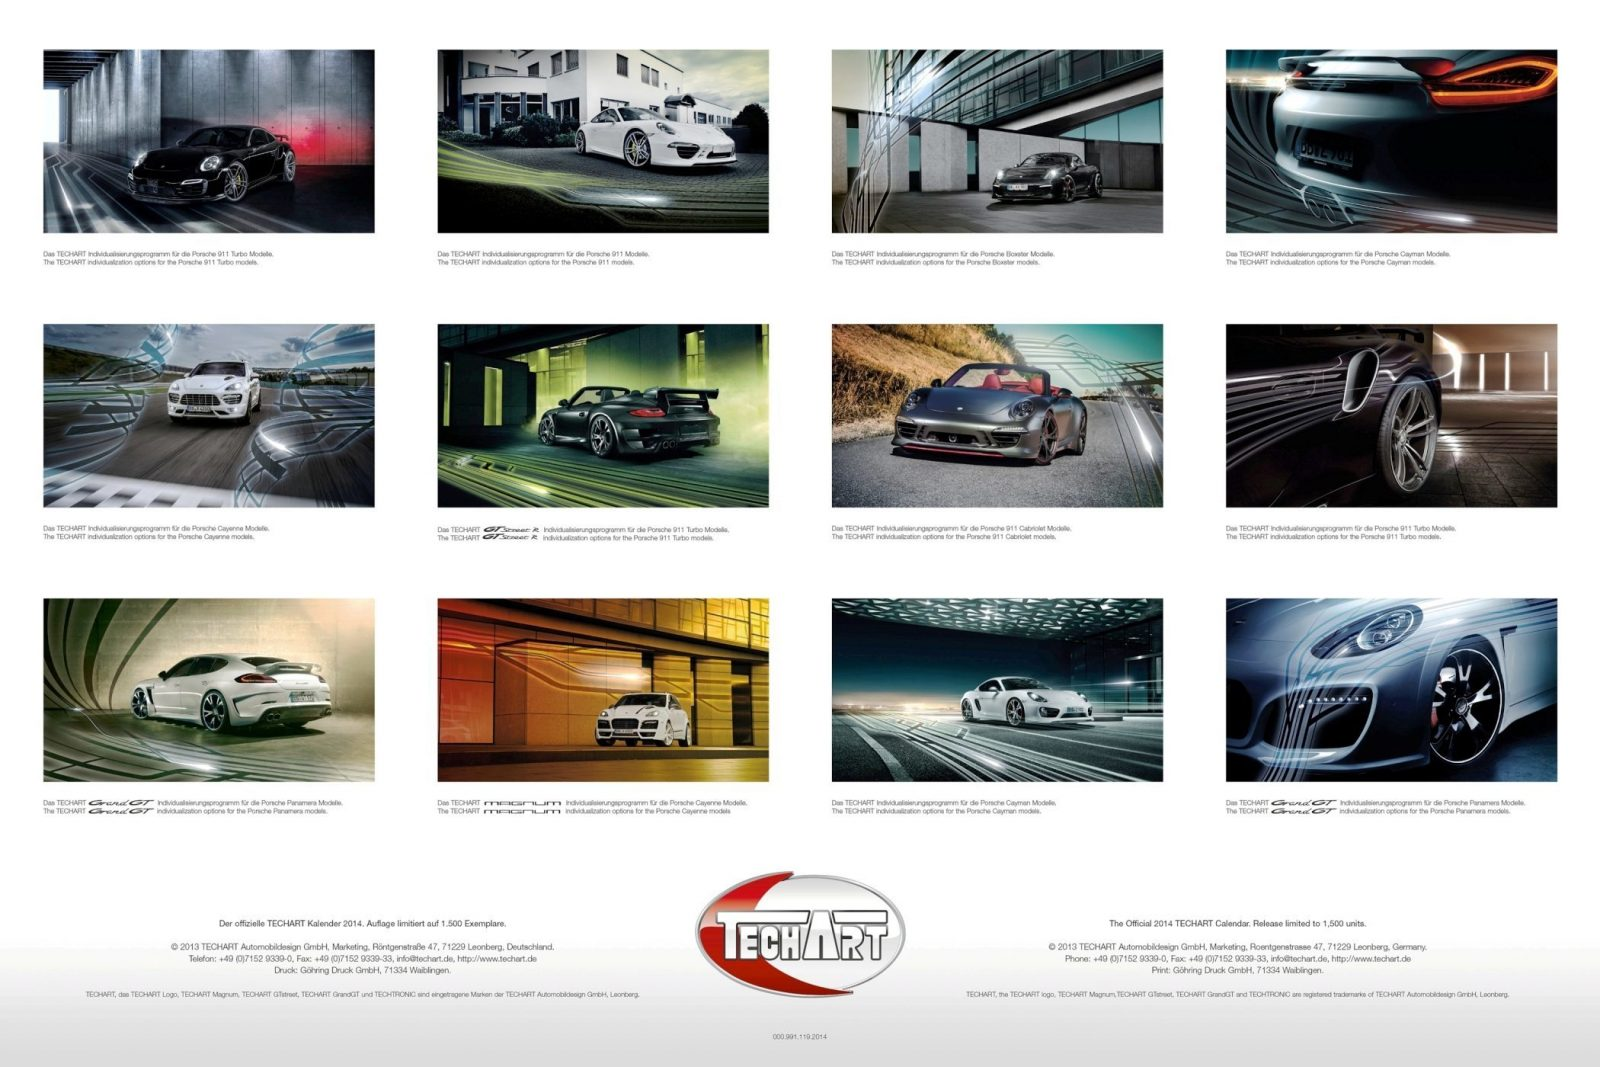 TECHART_Calendar_2014_overview